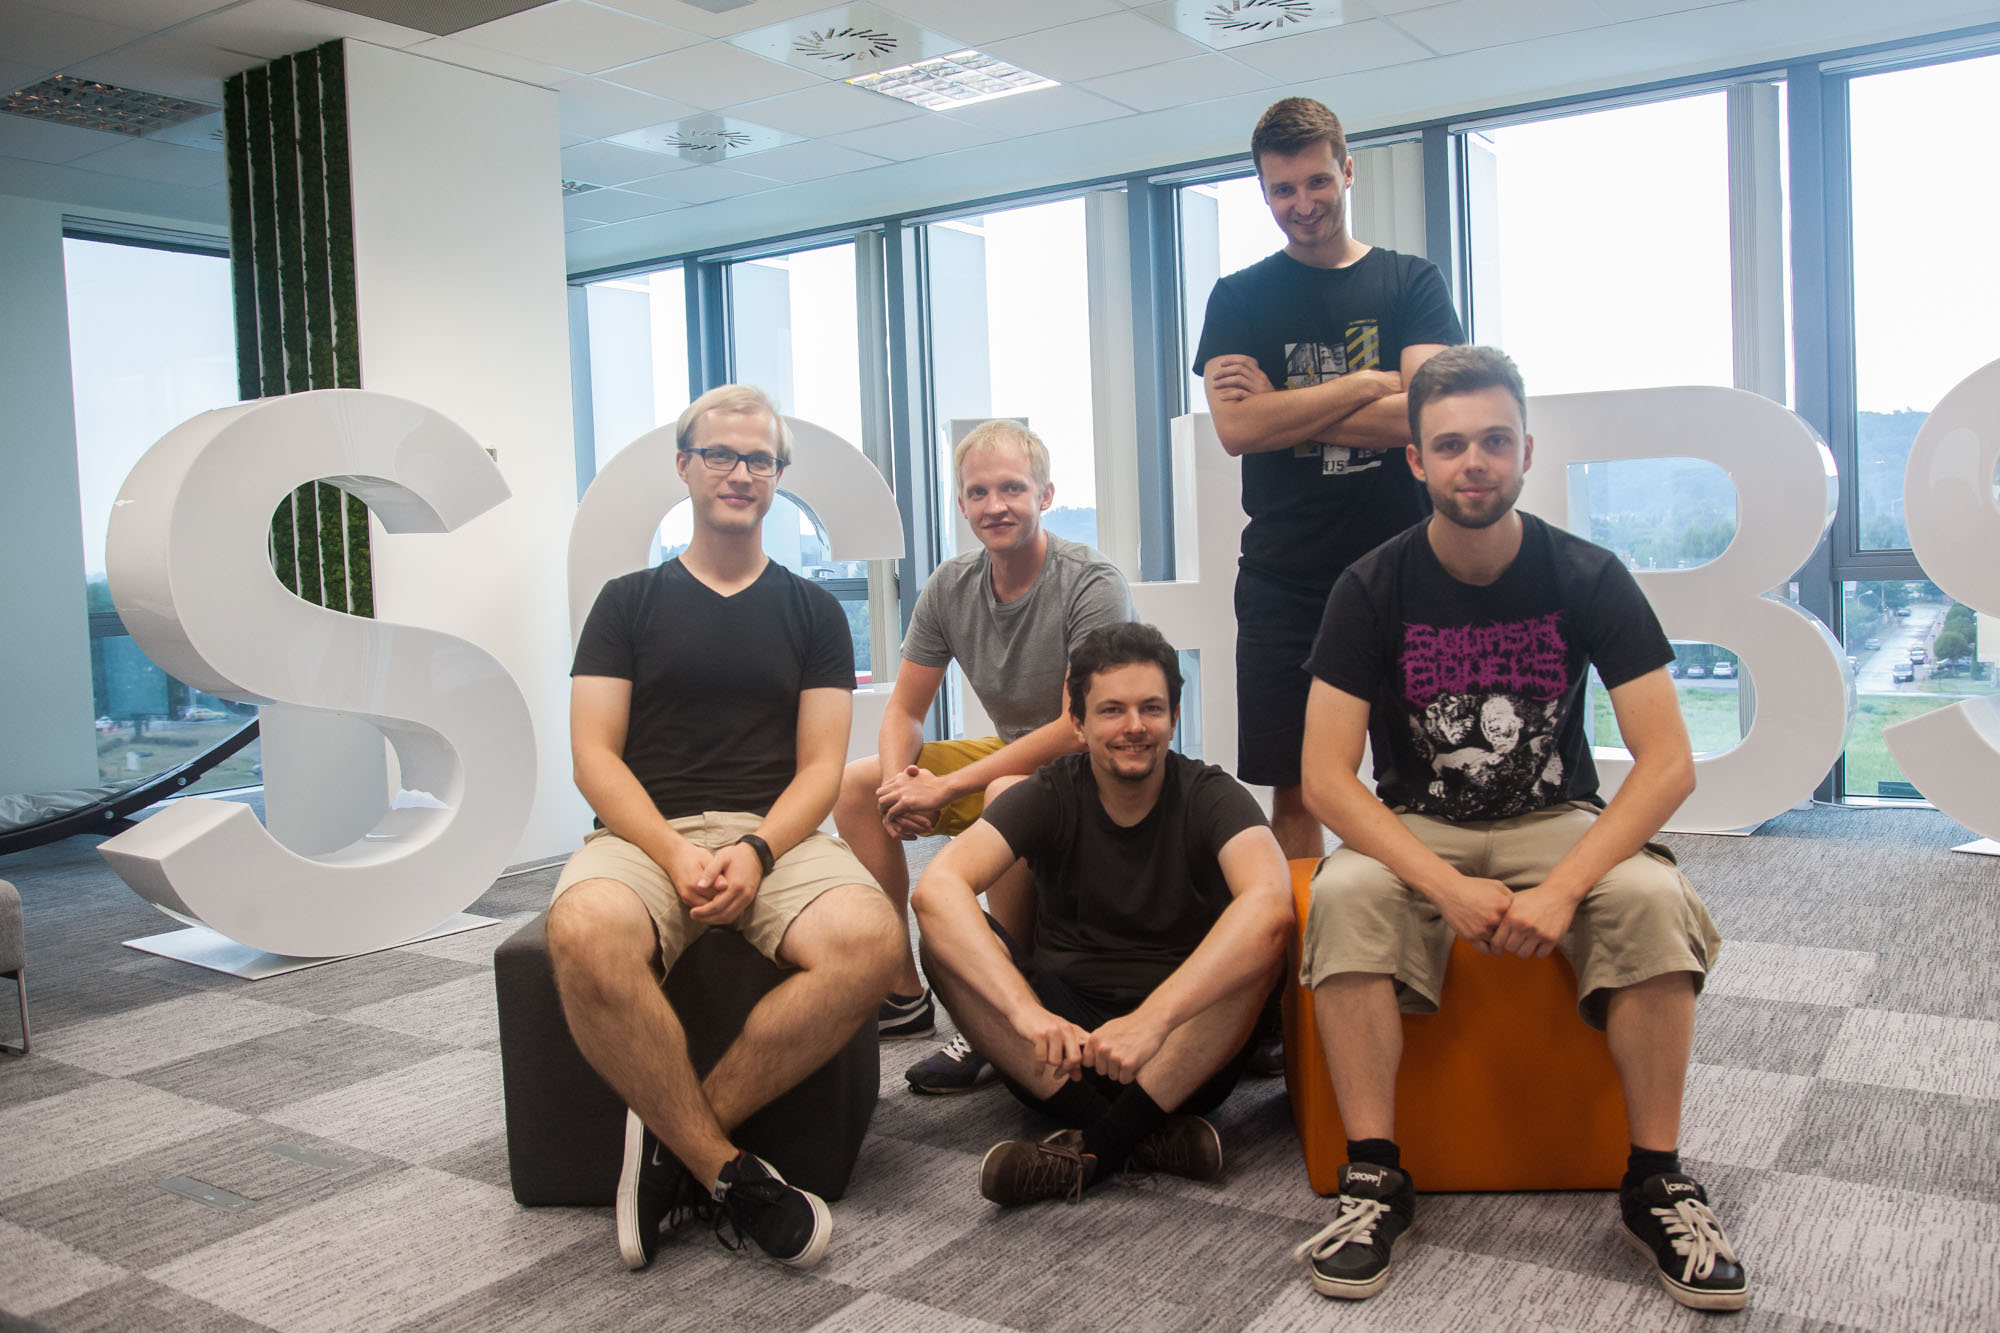 The editorial mobile team. From the left: Patryk Konior, Mirosław Kucharzyk, Jakub Wasilewski, Mateusz Kwasniewski and Krystian Jarmicki